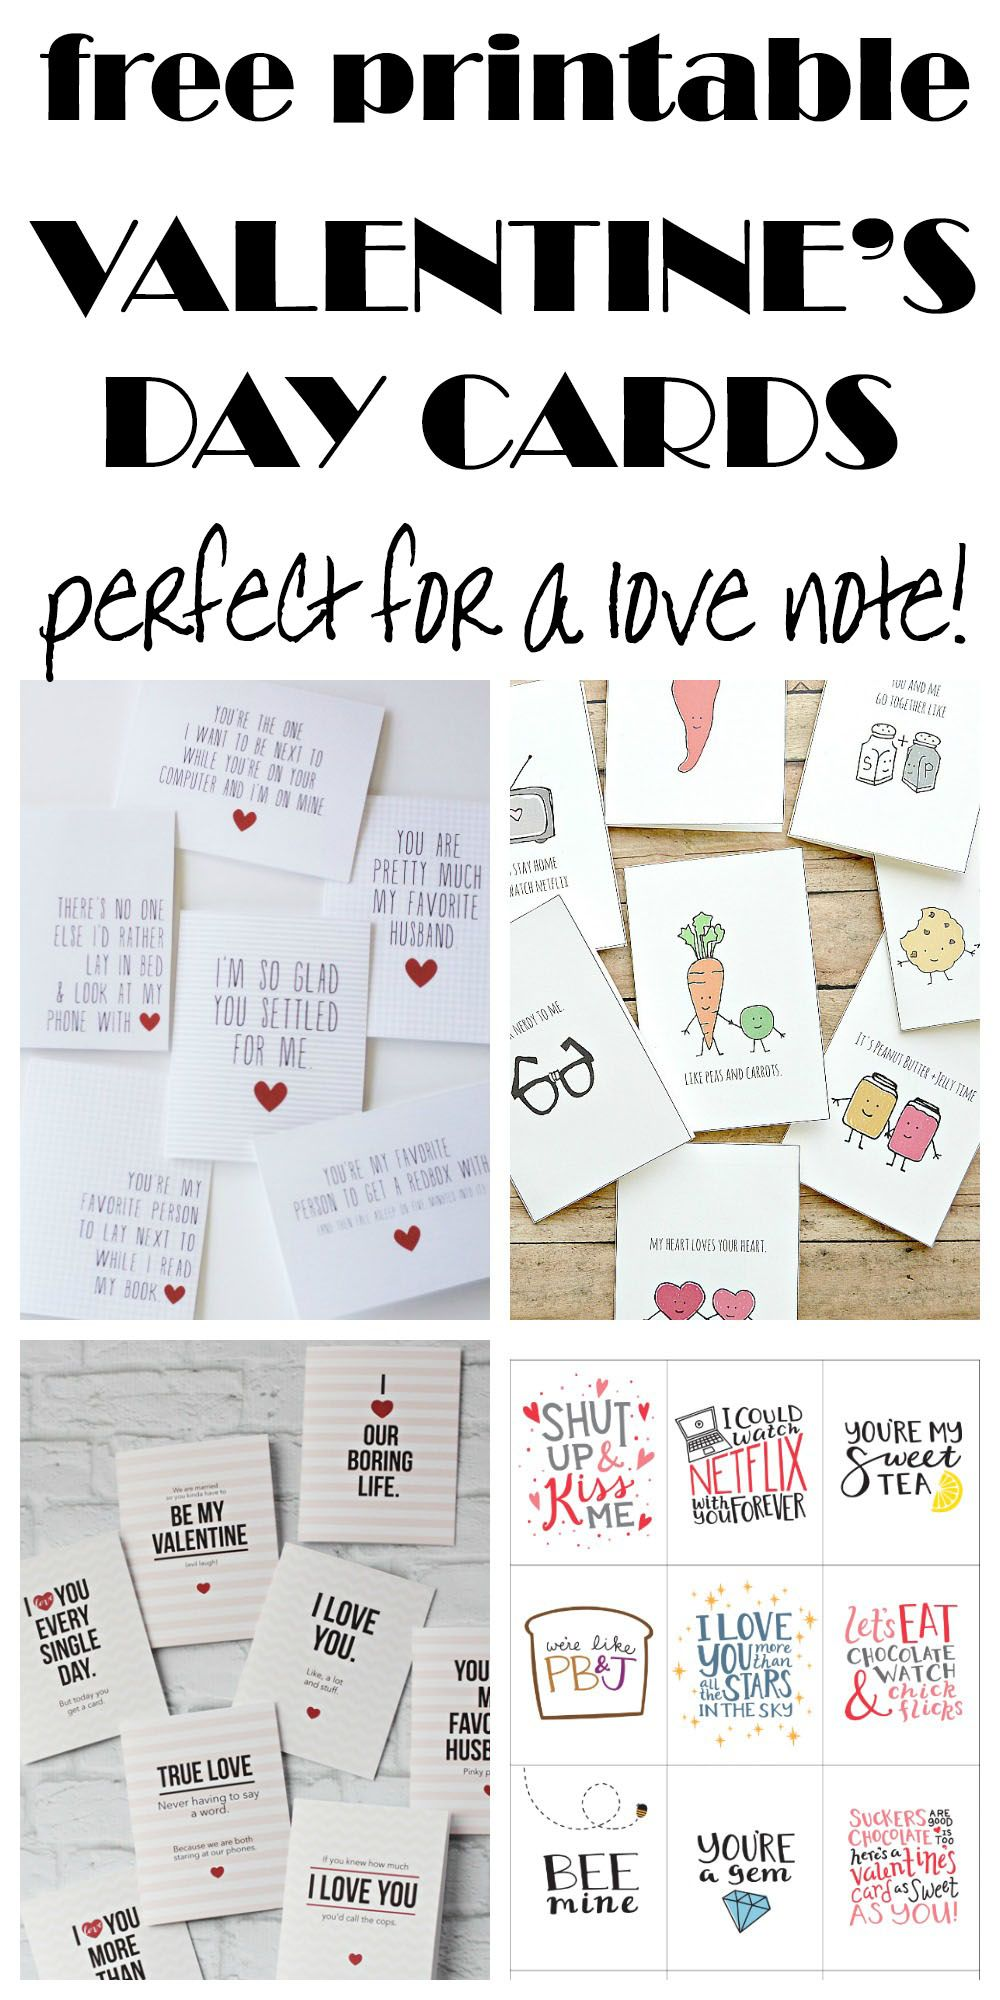 Funny And Cute Free Printable Cards Perfect For A Love Note Printable Valentines Day Cards Funny Love Cards Love Cards For Him